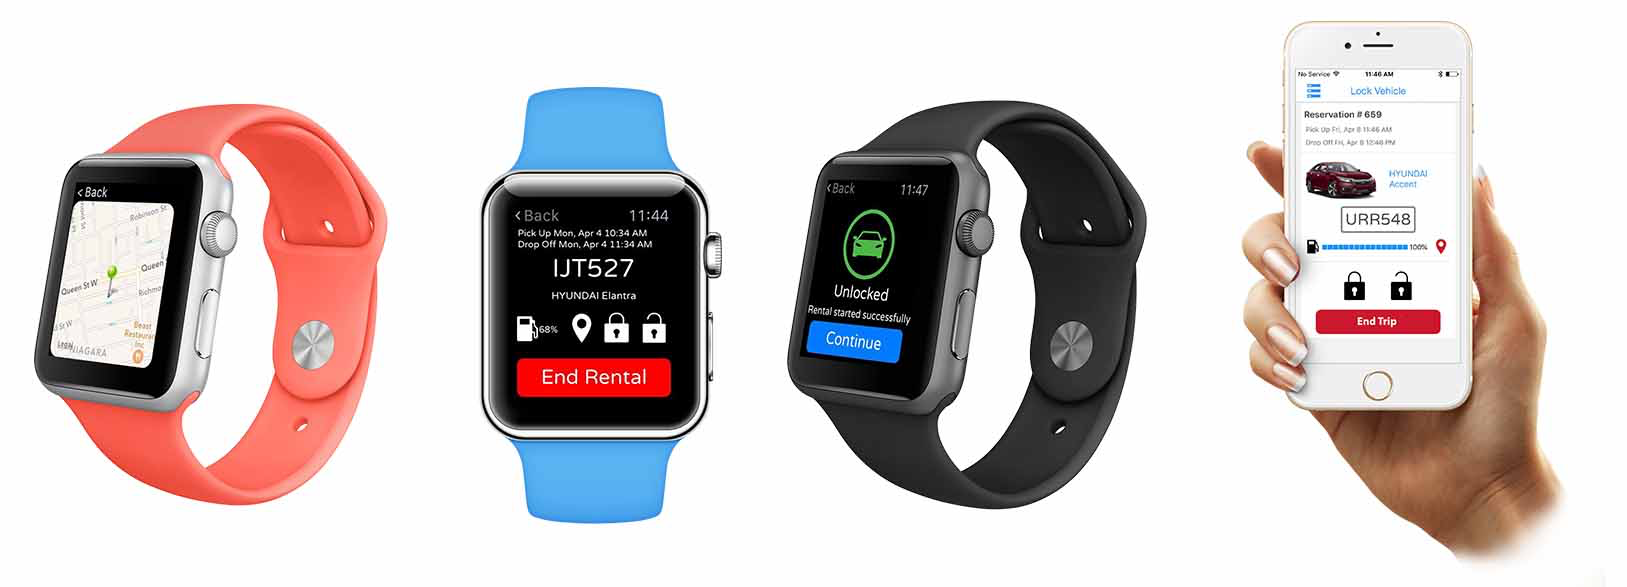 Rent Centric on Apple watches